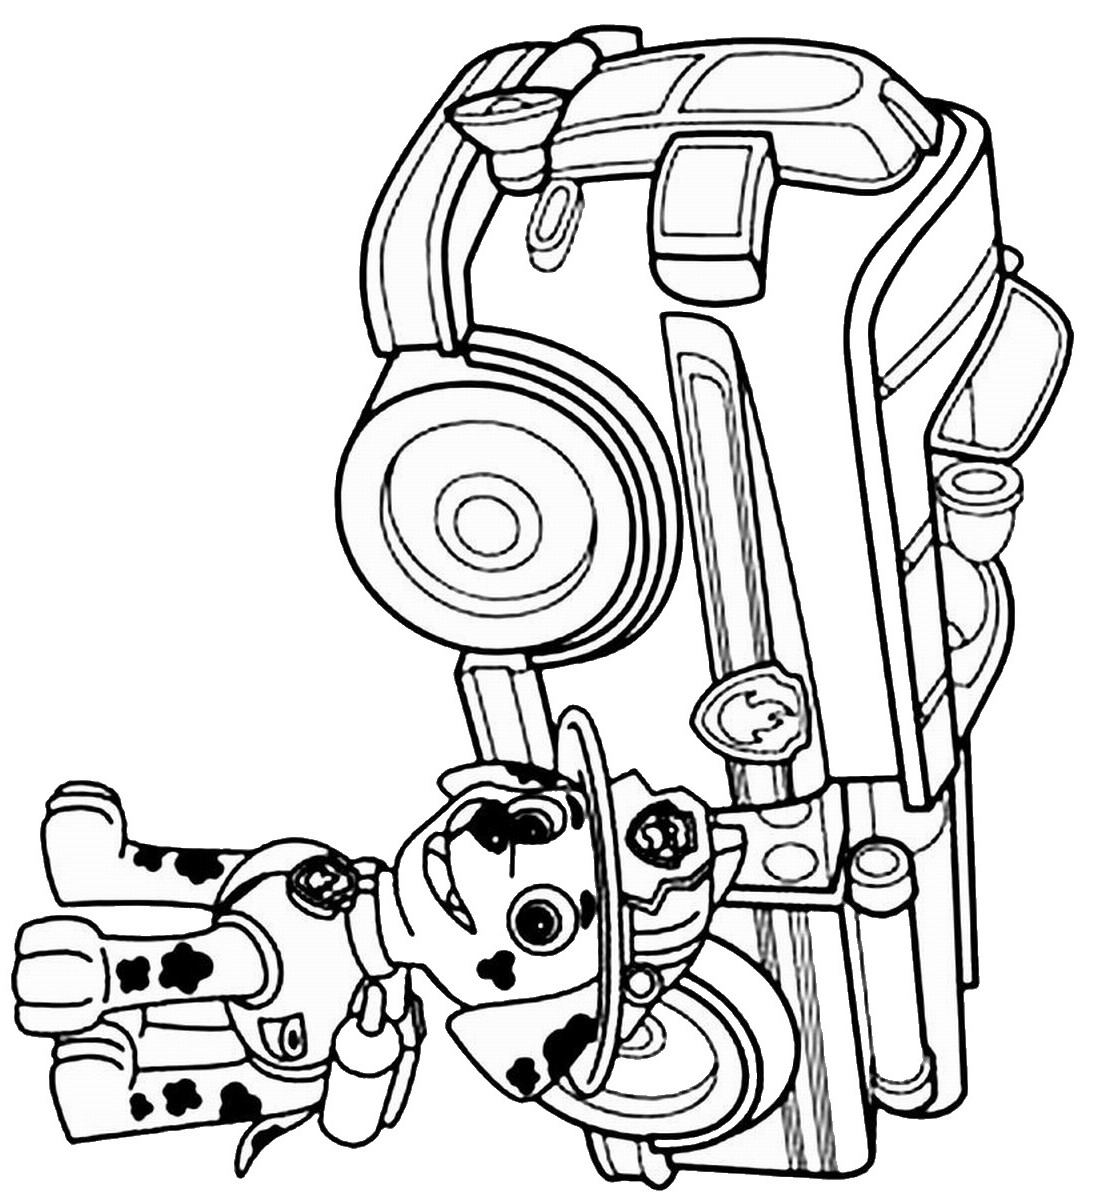 Paw Patrol Coloring Pages Marshall Marshall Puppy With His Firetruck Paw Patrol Coloring Pages